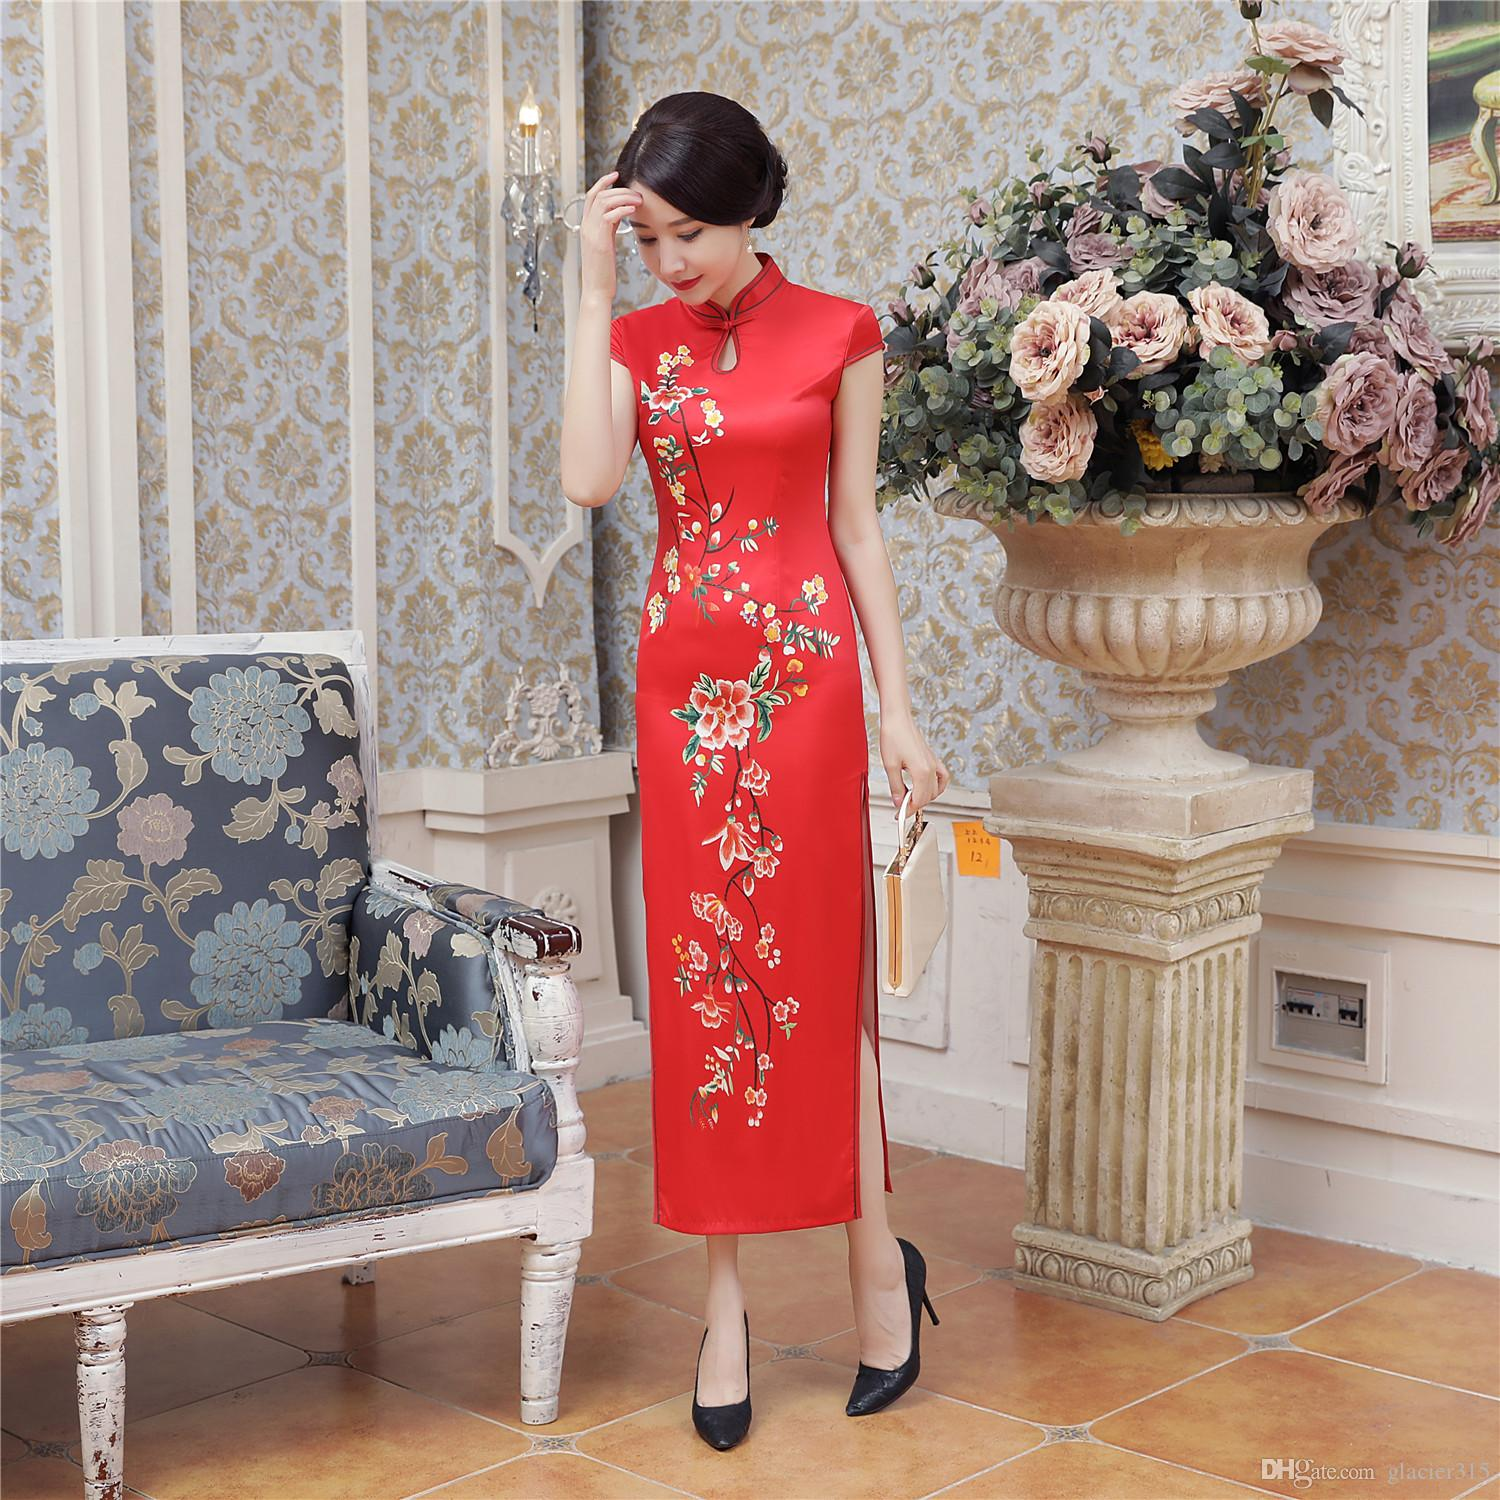 Shanghai Story Keyhole Chinese traditional clothing oriental style dresses long Cheongsam Short Sleeve Floral Qipao For Woman